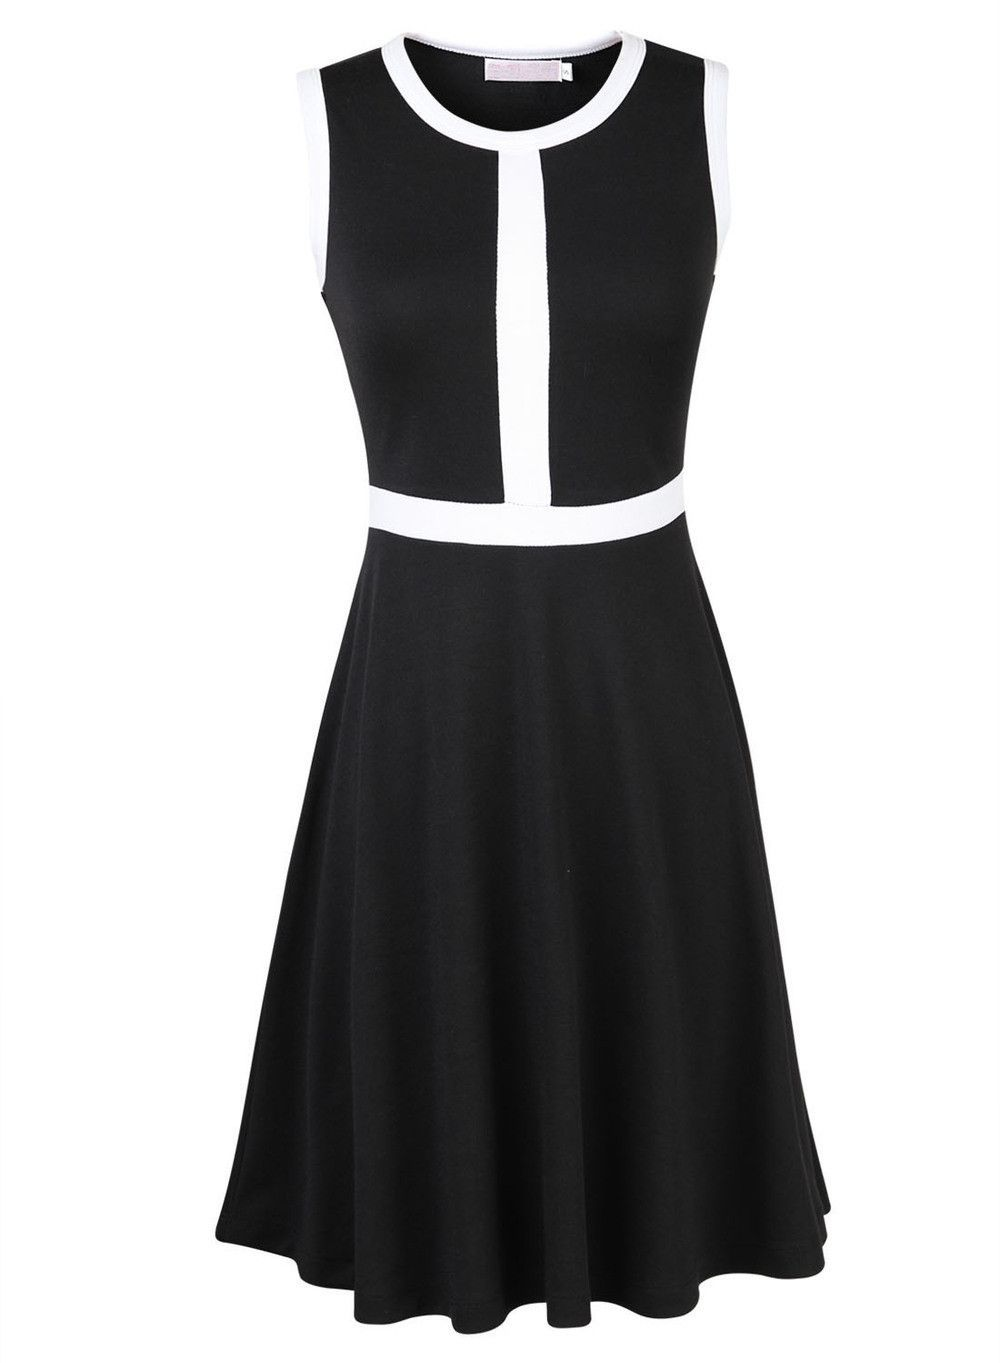 11f531a80f92d New black white contrast color patchwork sleeveless pleated dress women  casual office party dresses robe vestidos plus size